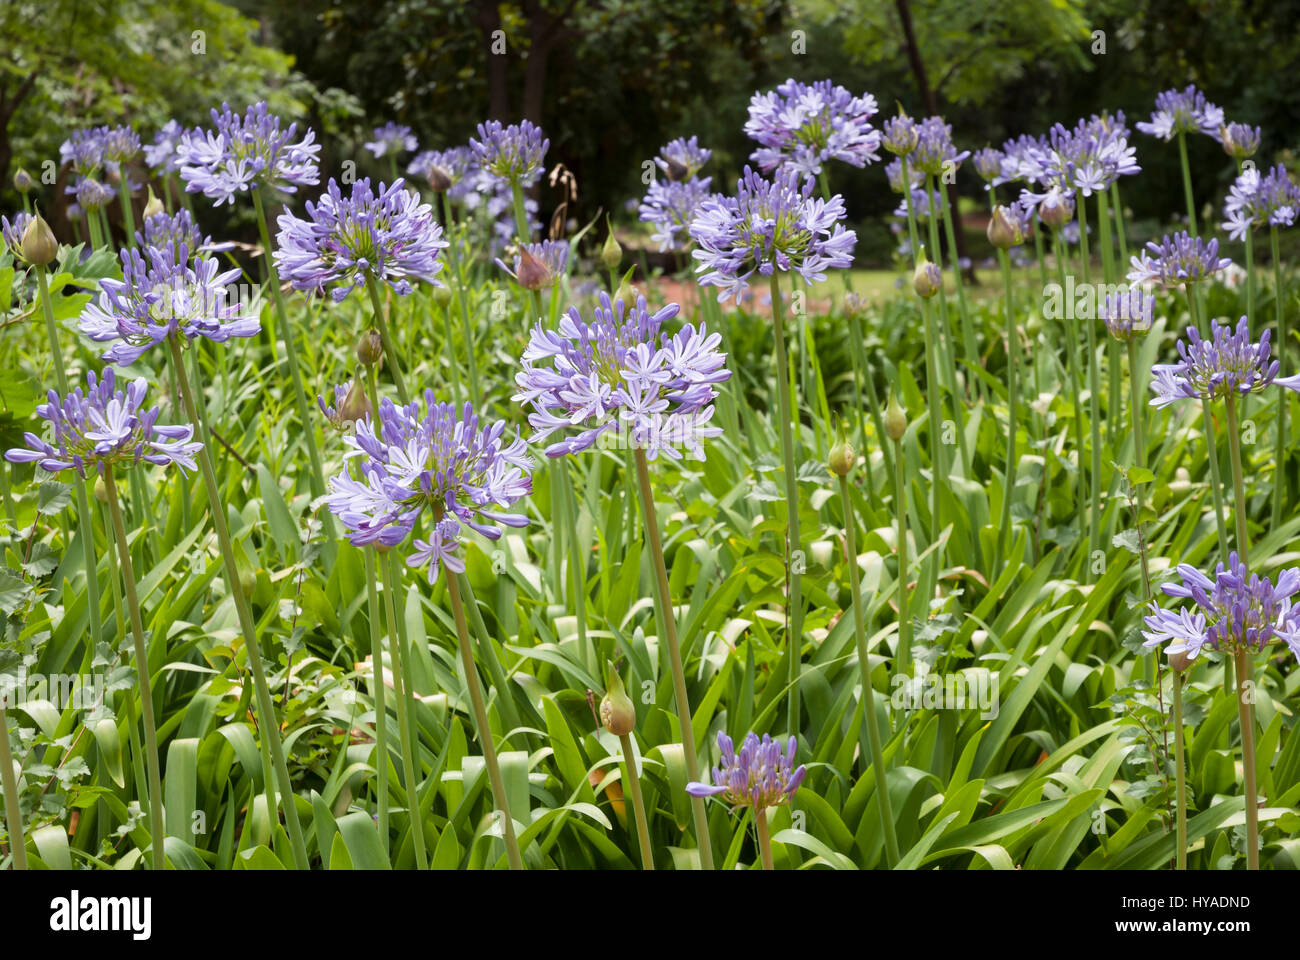 Blue african lily, agapanthus africanus flowers in a garden - Stock Image